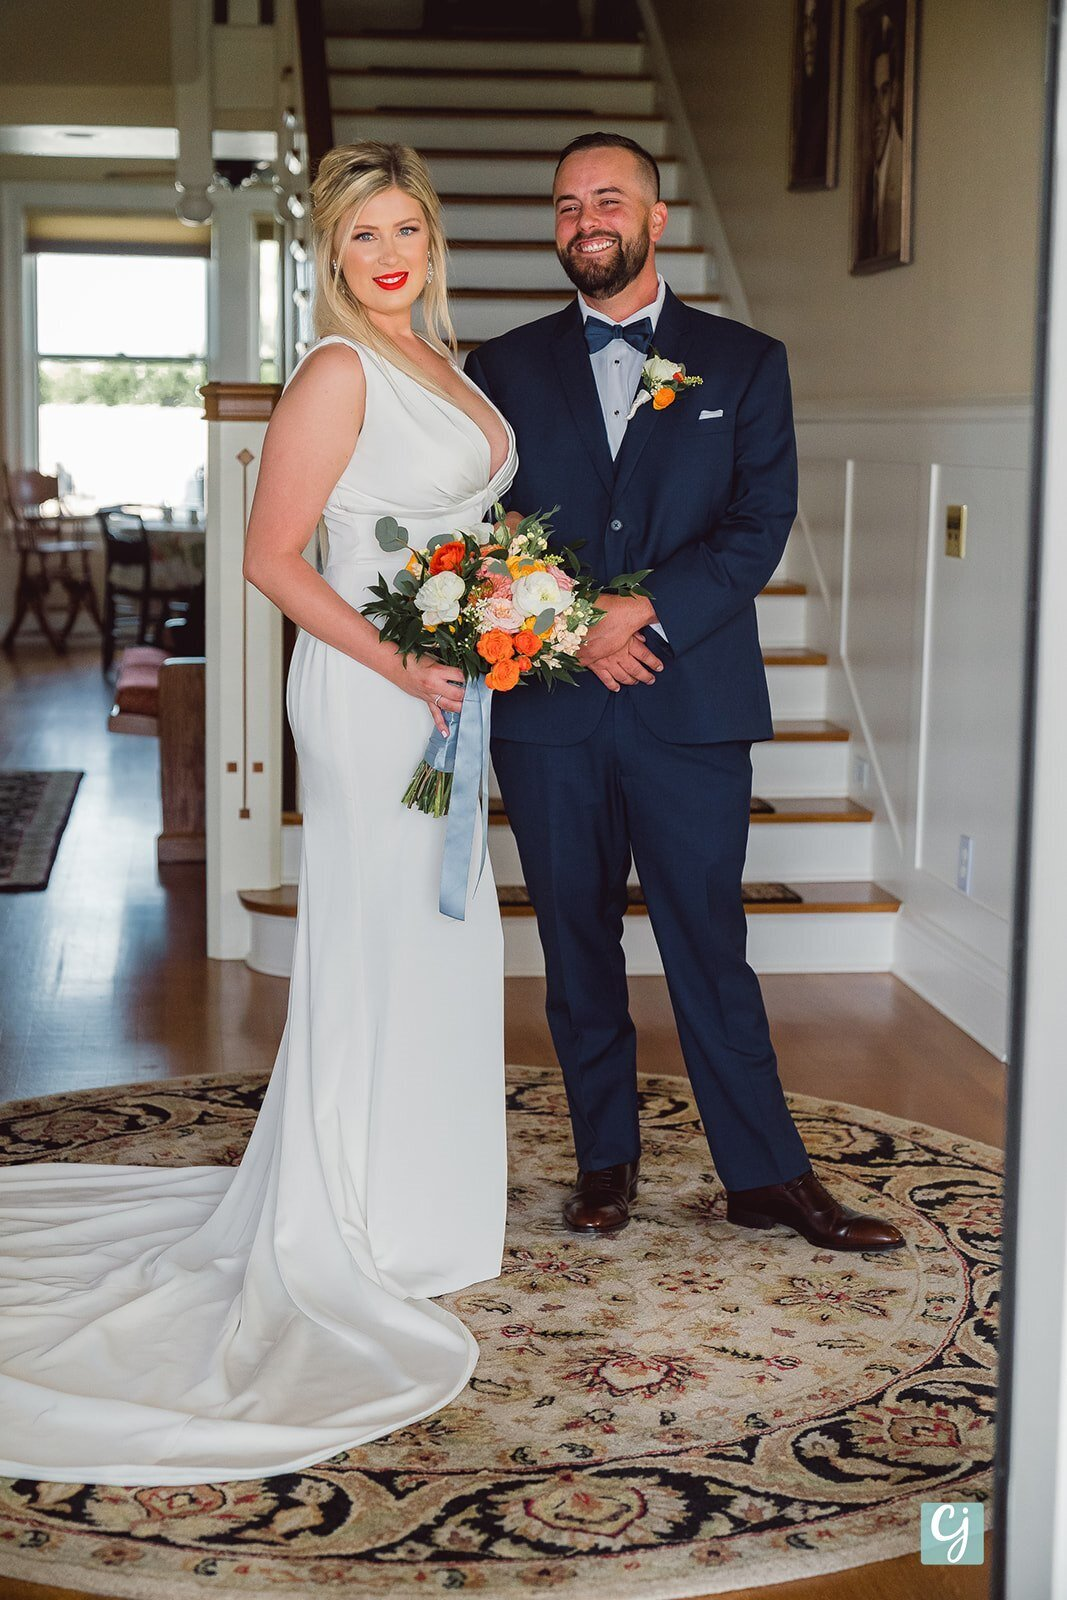 Christina Joy Photography_21_Willman-Wedding-Sneak-Peeks2021_websize